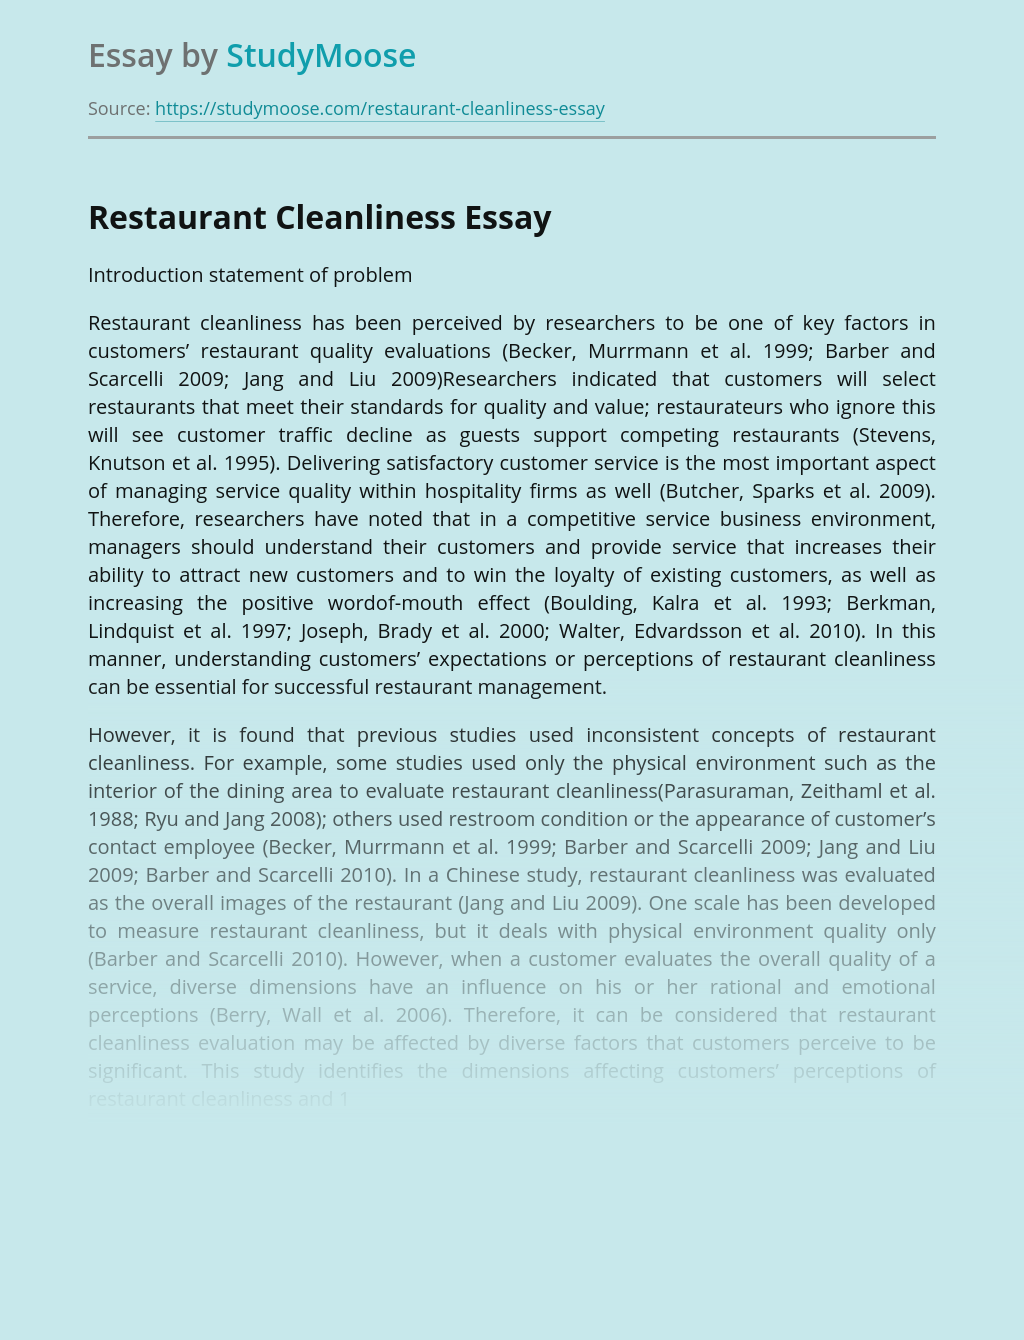 Restaurant Cleanliness